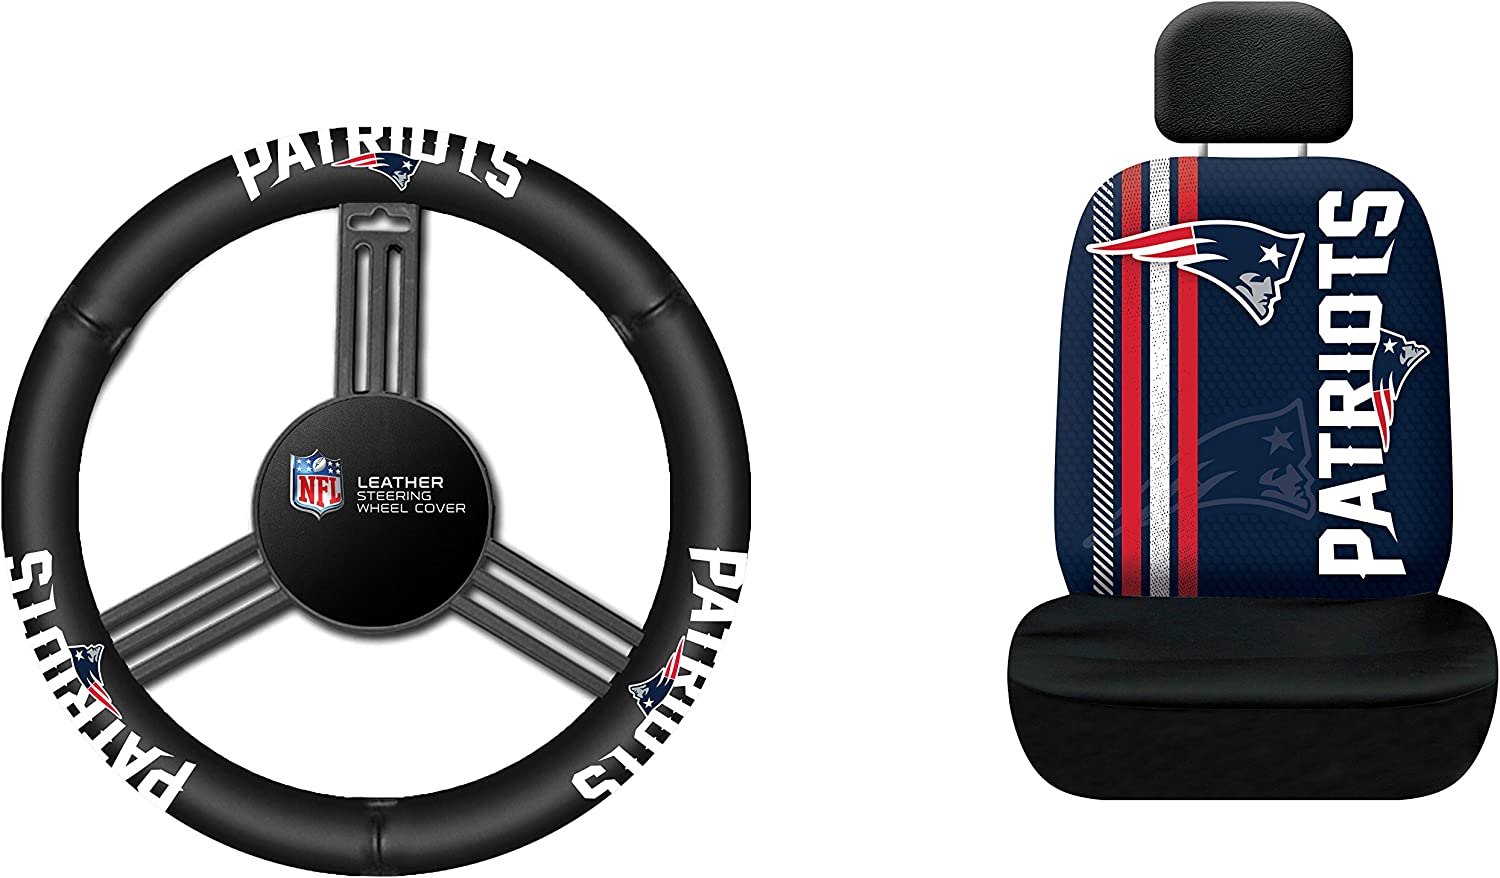 Fremont Die New England Patriots Leather Steering Wheel Cover